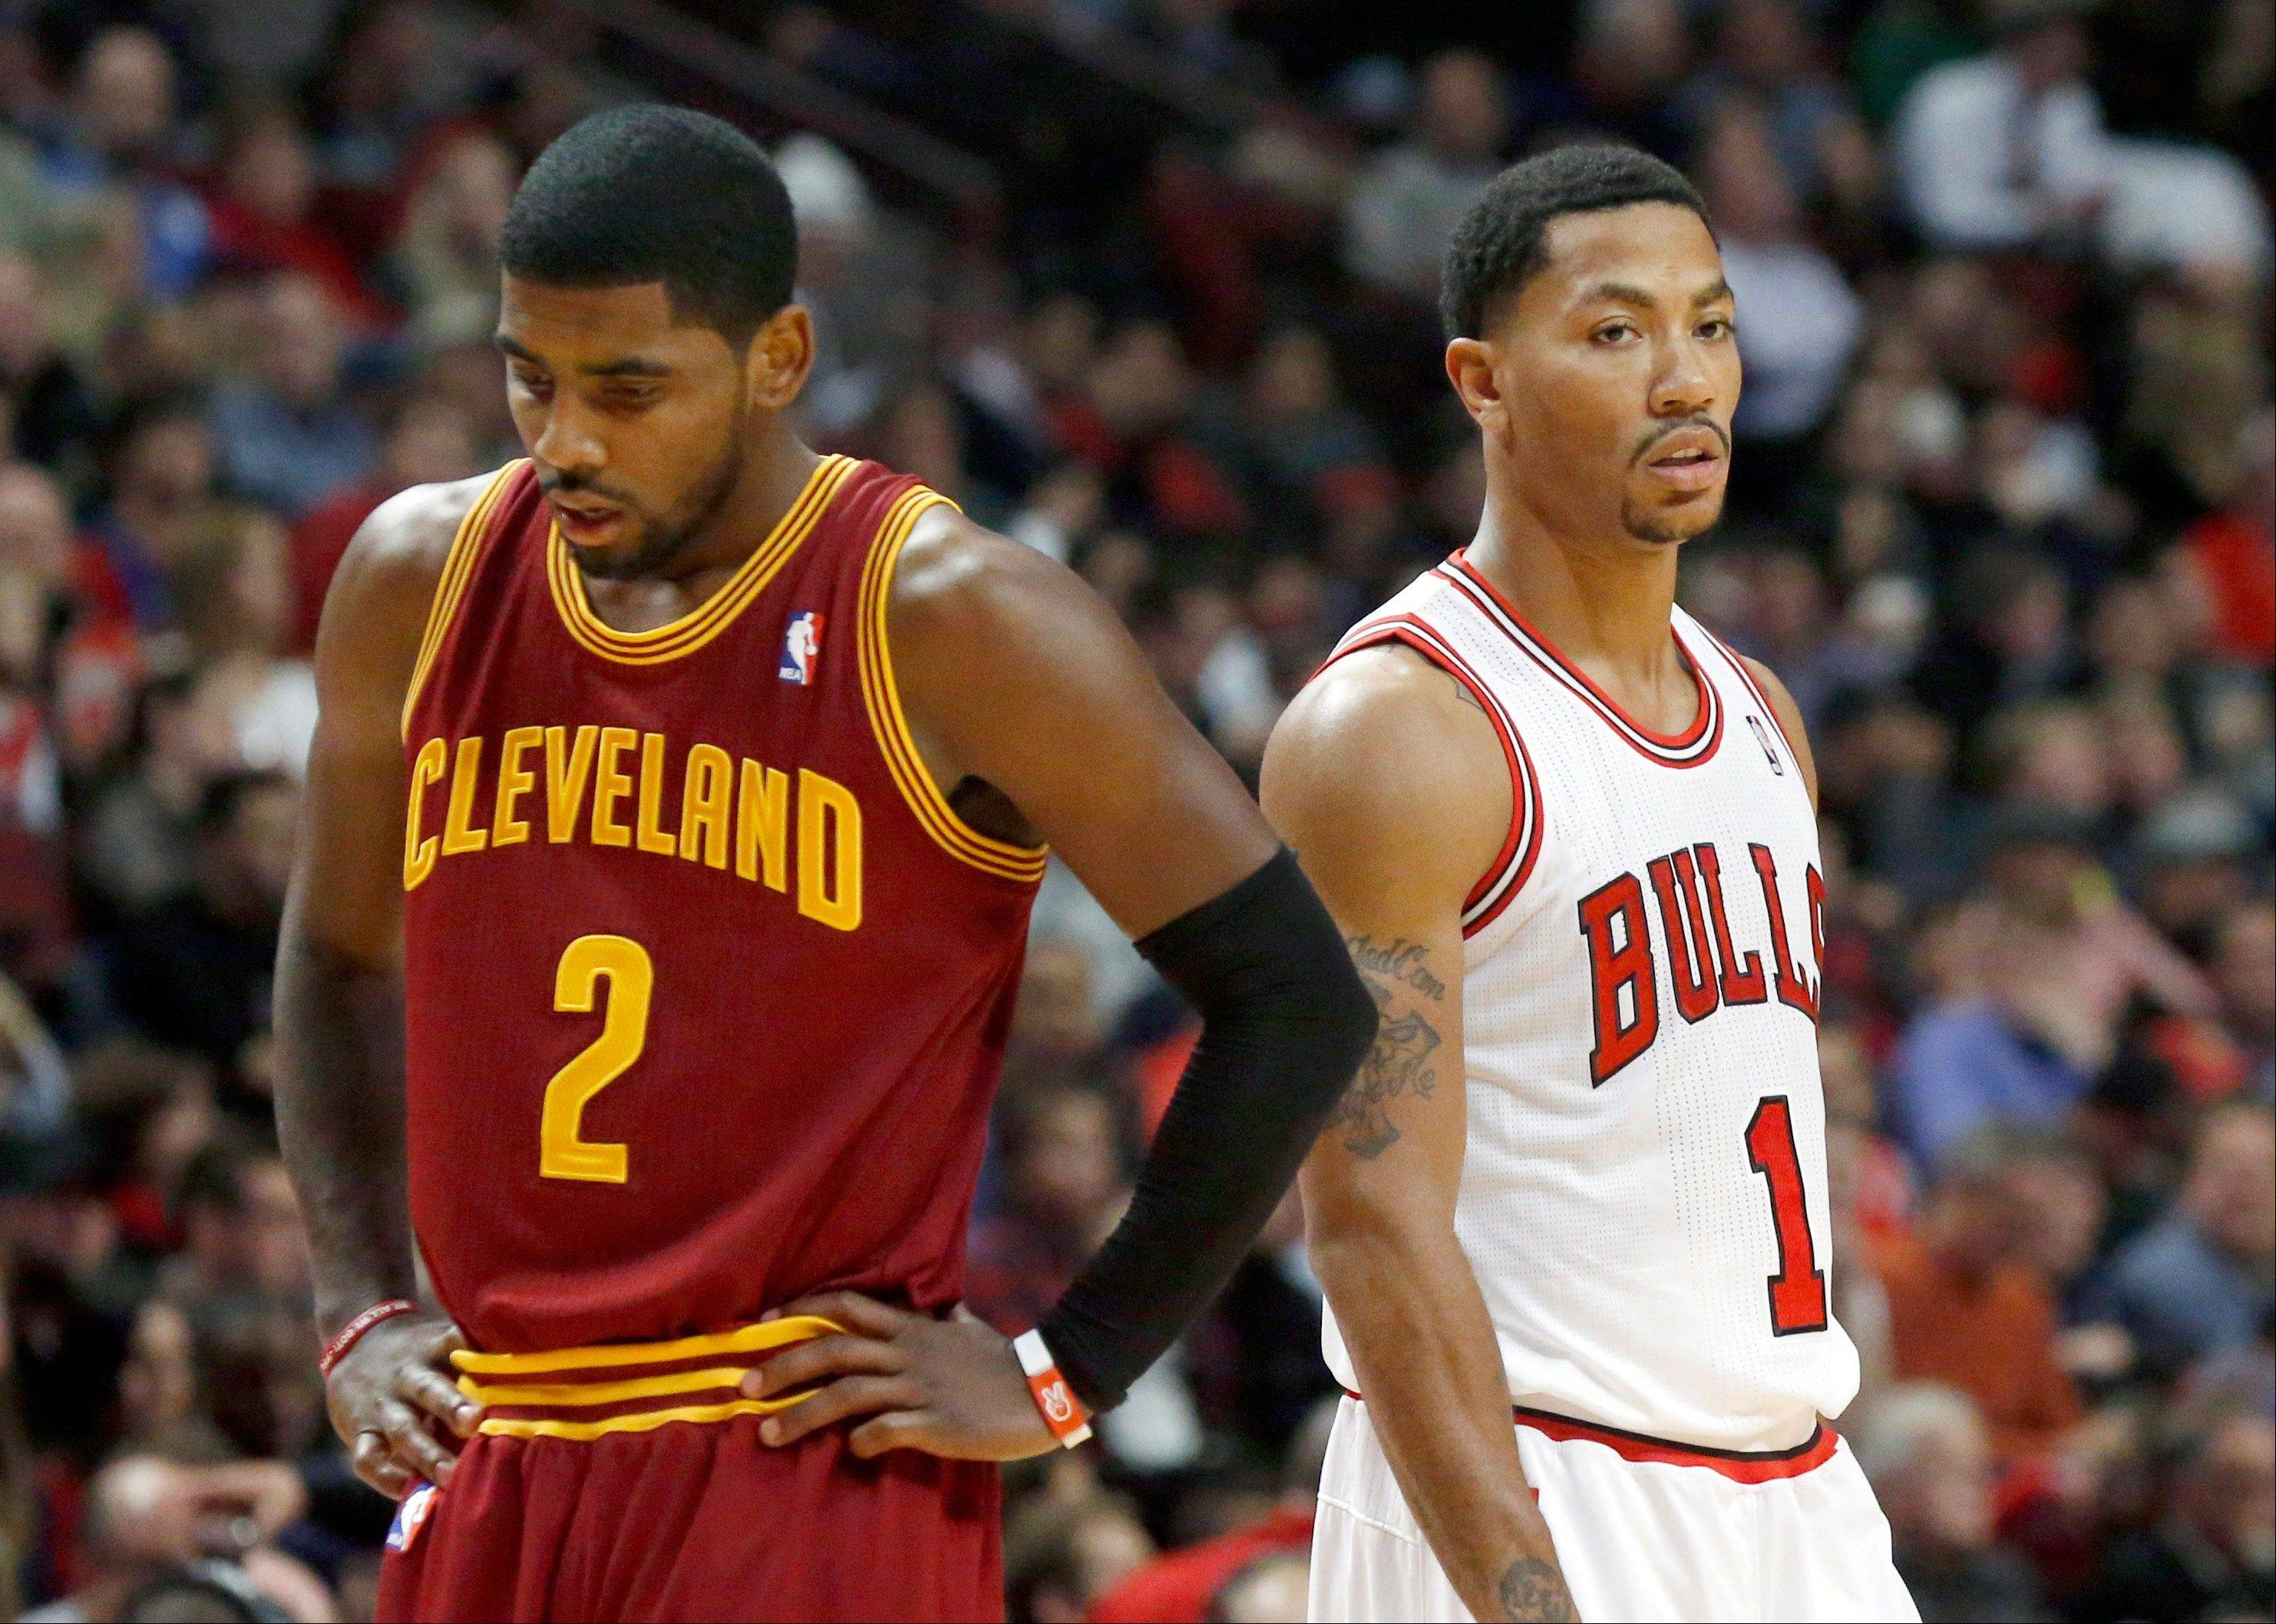 Chicago Bulls point guard Derrick Rose (1) and Cleveland Cavaliers point guard Kyrie Irving wait for a Bulls free throw attempt during the second half of an NBA basketball game against the Chicago Bulls Monday, Nov. 11, 2013, in Chicago. The Bulls won 96-81. (AP Photo/Charles Rex Arbogast)